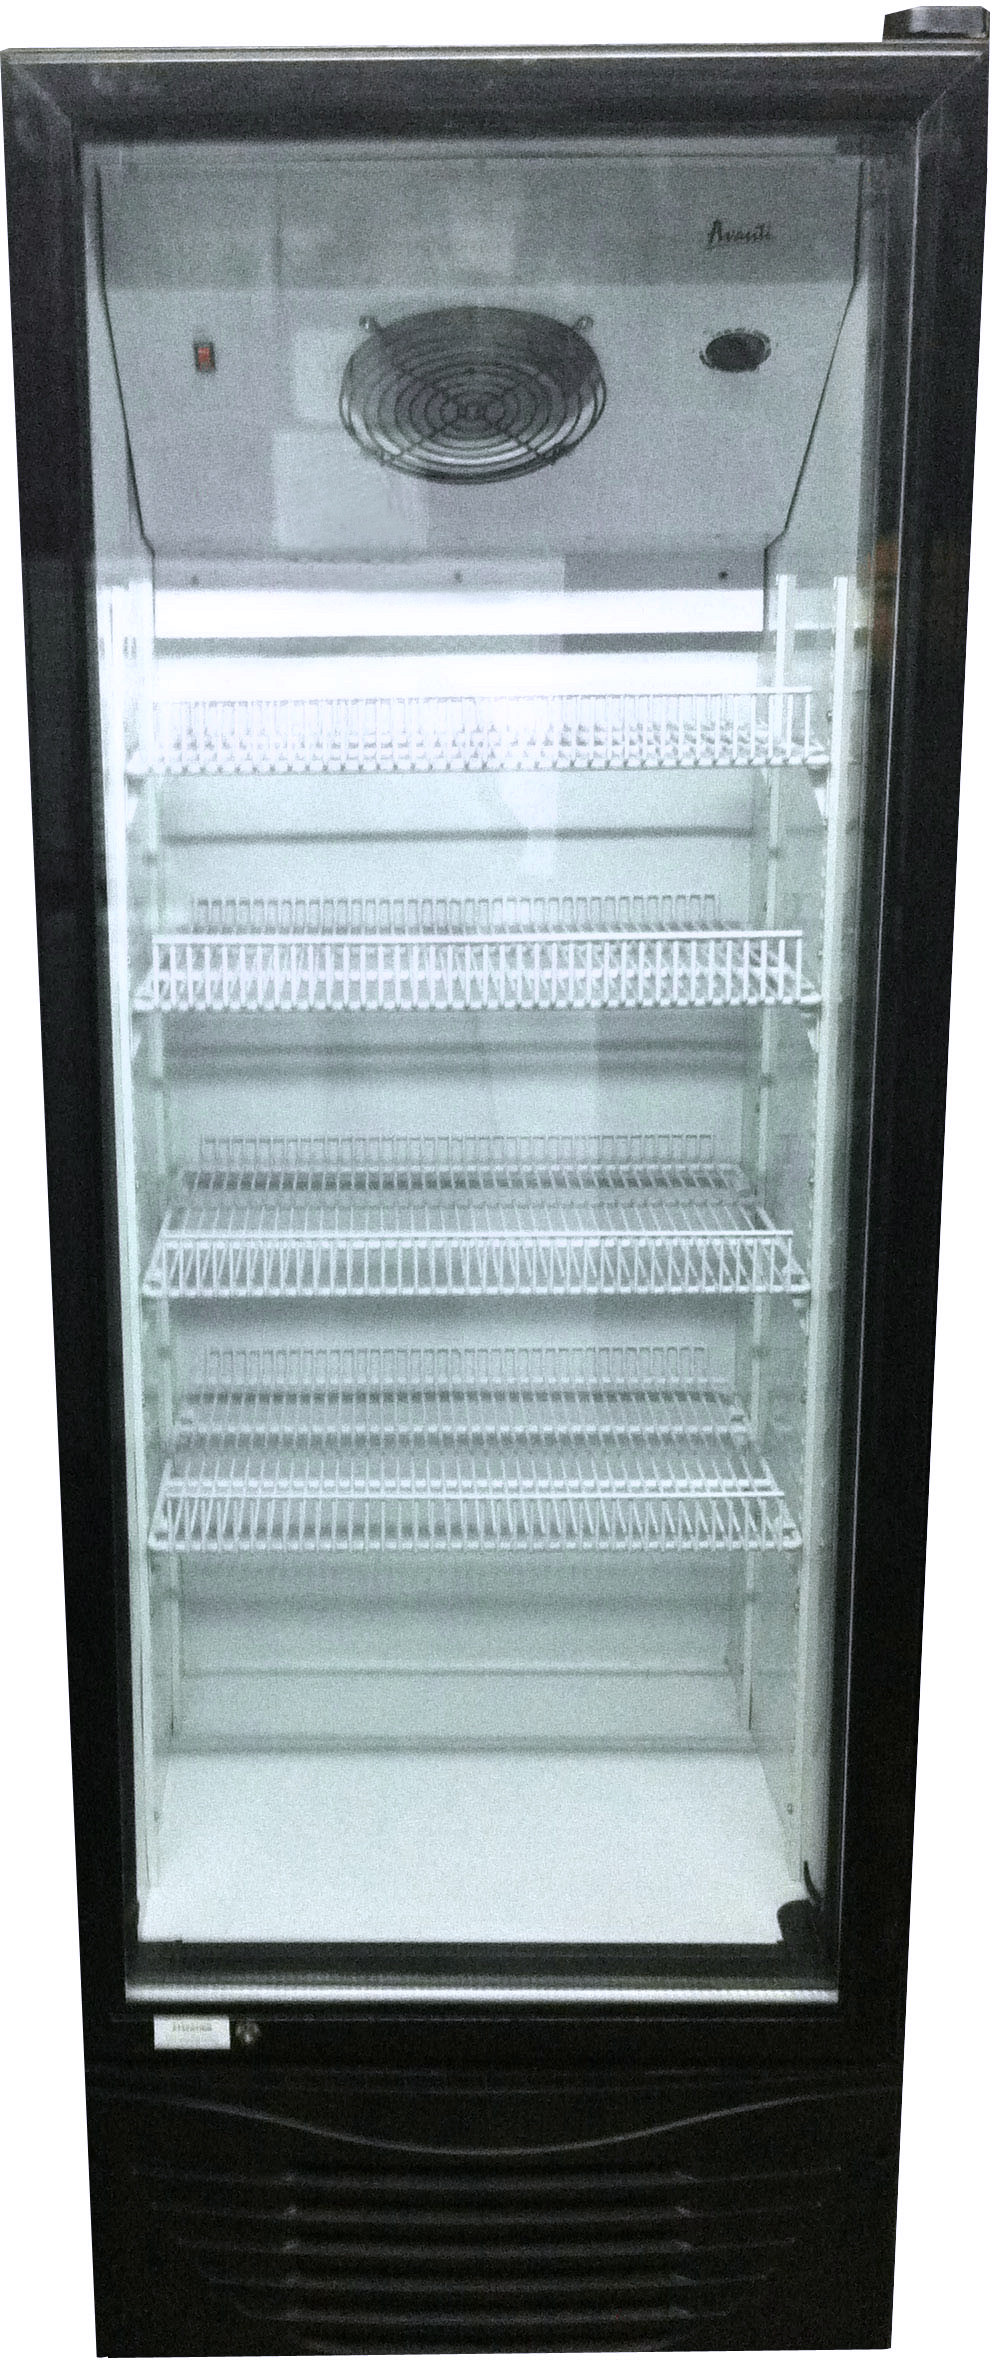 Avanti Bca280 9 4 Cu Ft Commercial Beverage Cooler With